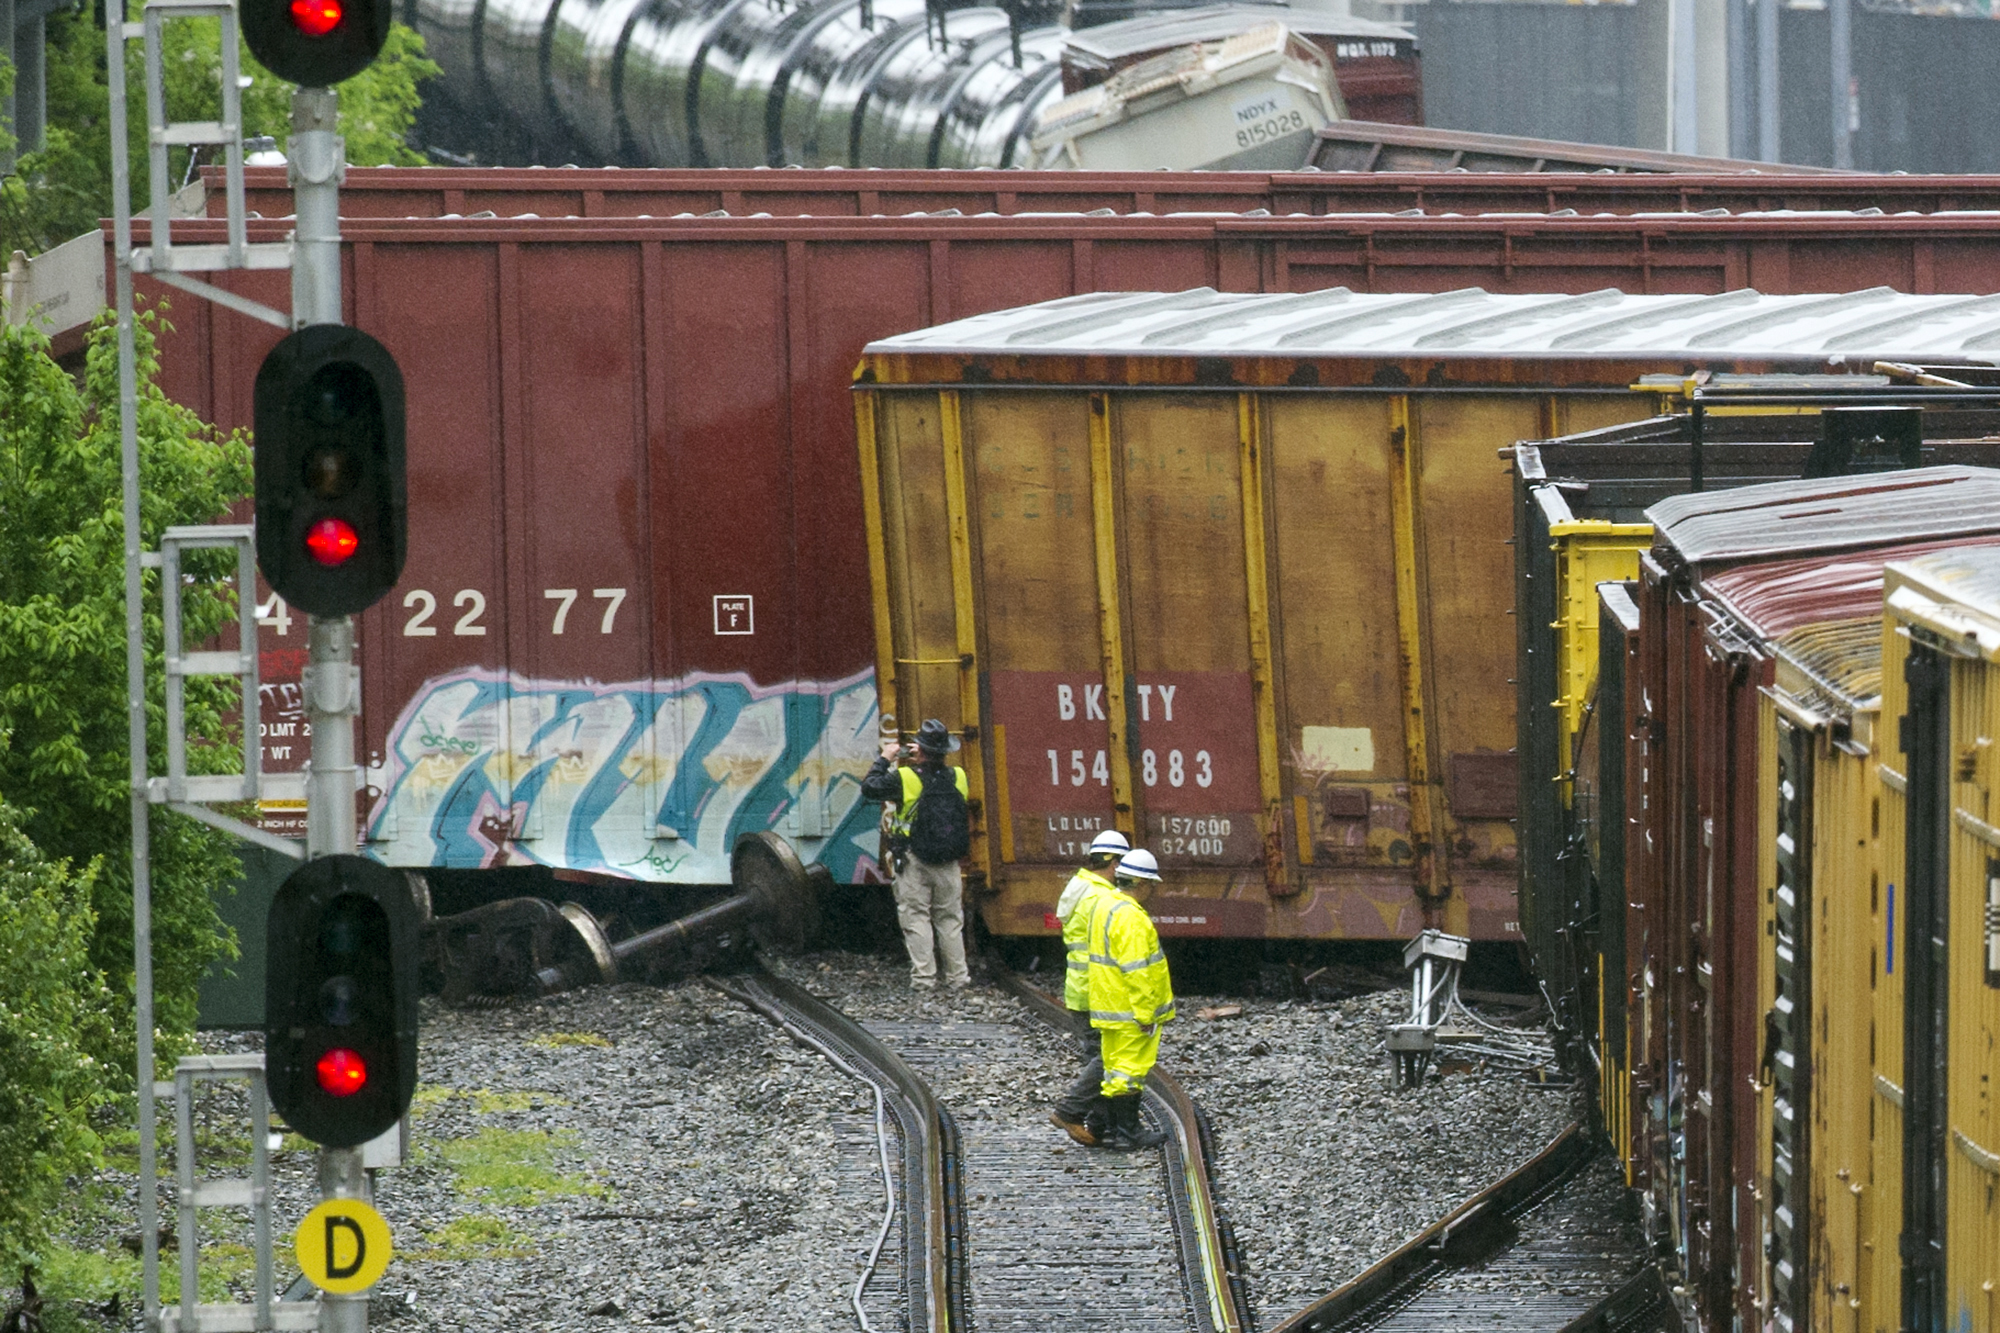 Crews cleaning up derailment in Washington - The Blade